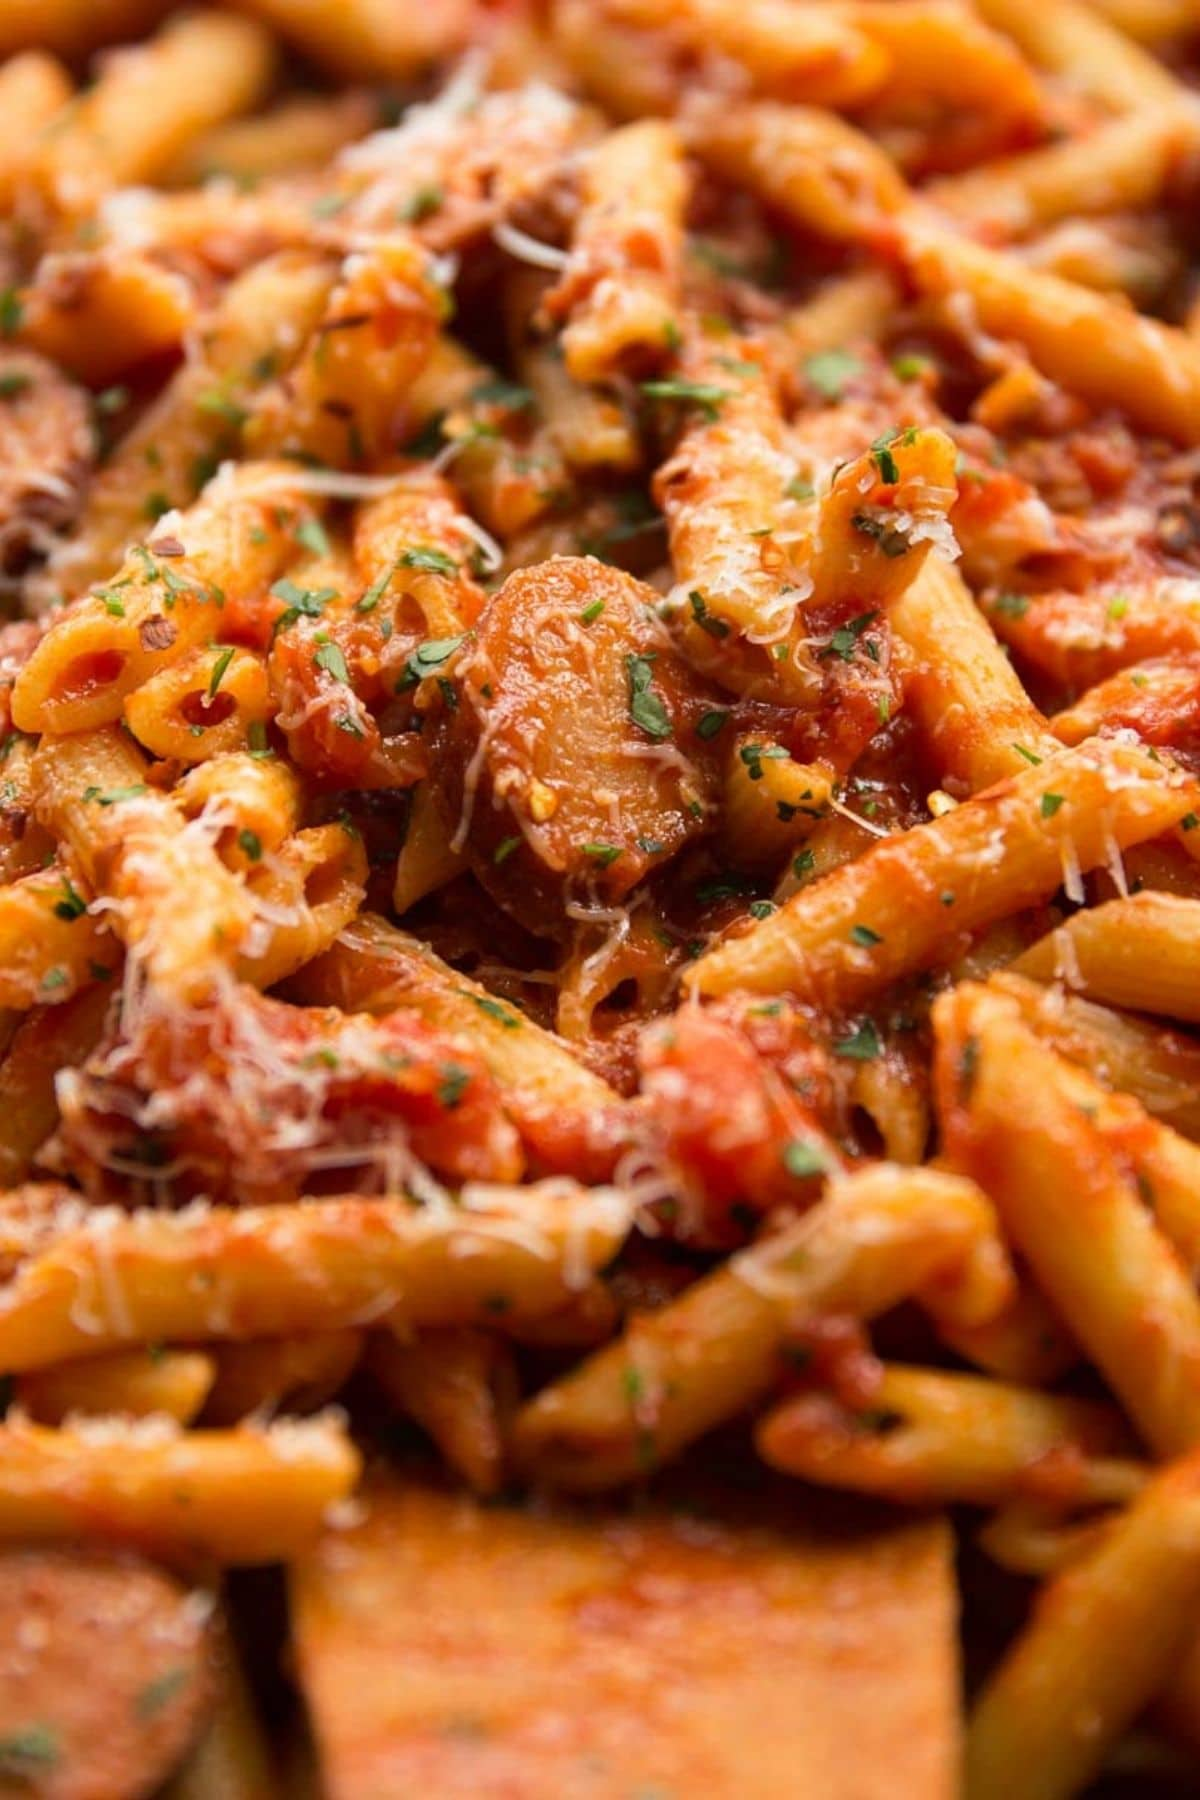 Penne pasta with red sauce and sausage